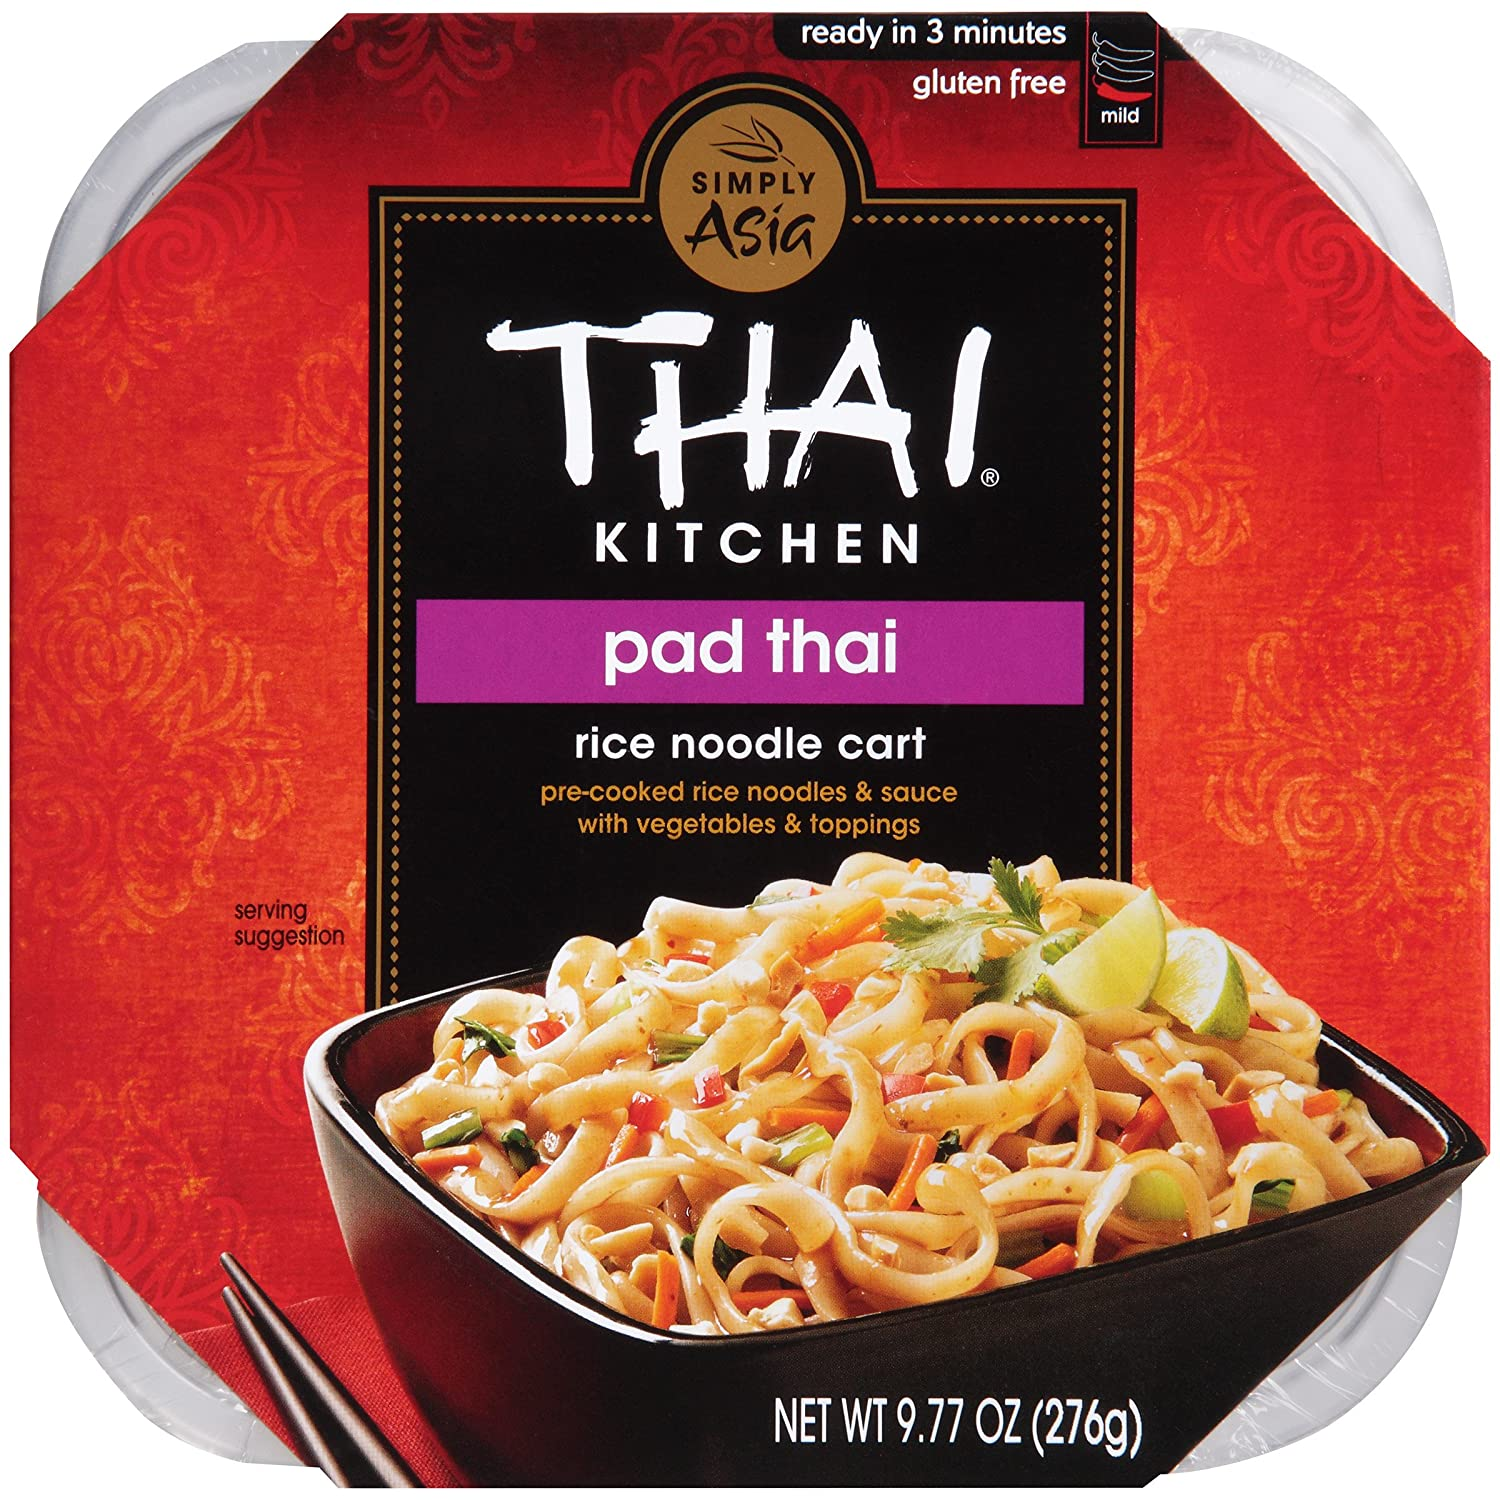 Thai Kitchen Pad Thai Rice Noodle Cart, 9.77 oz